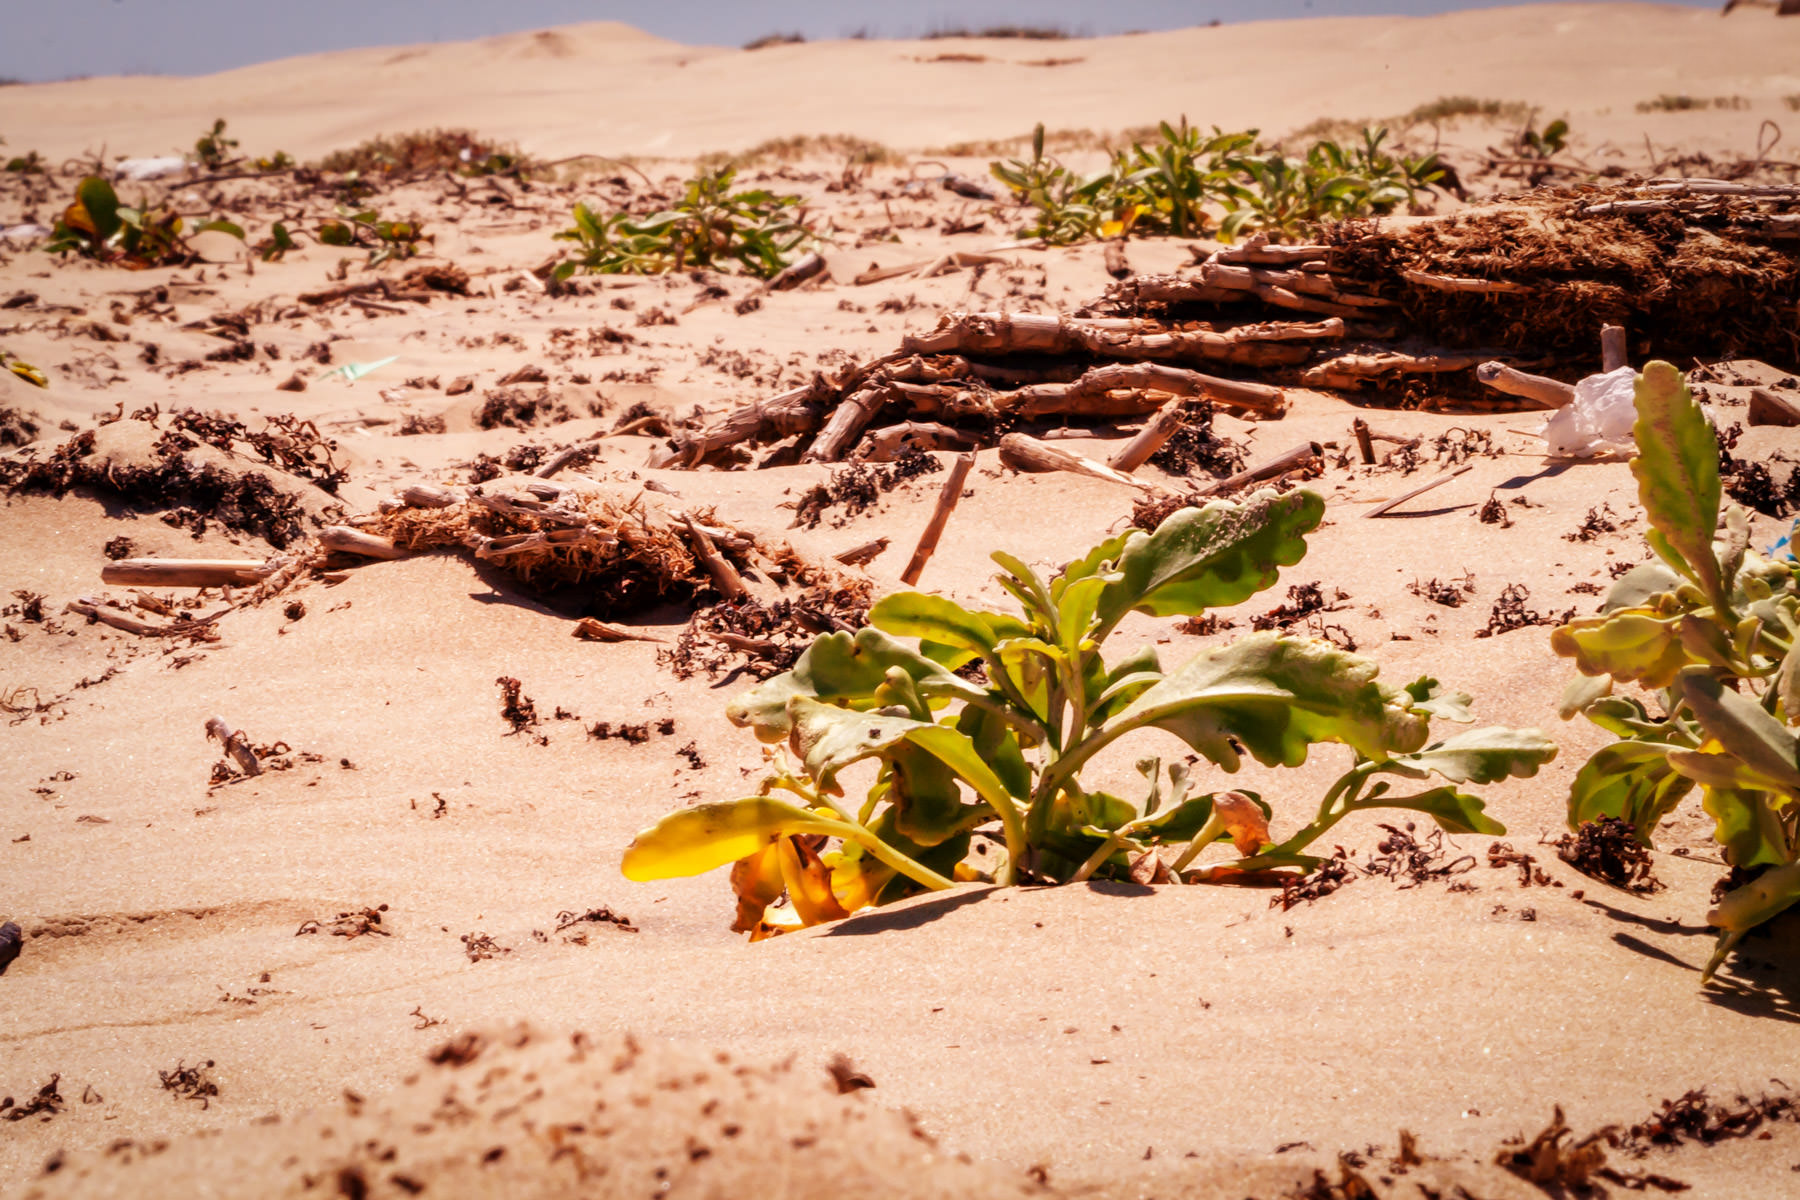 Plants and driftwood covering the South Padre Island, Texas sand dunes.